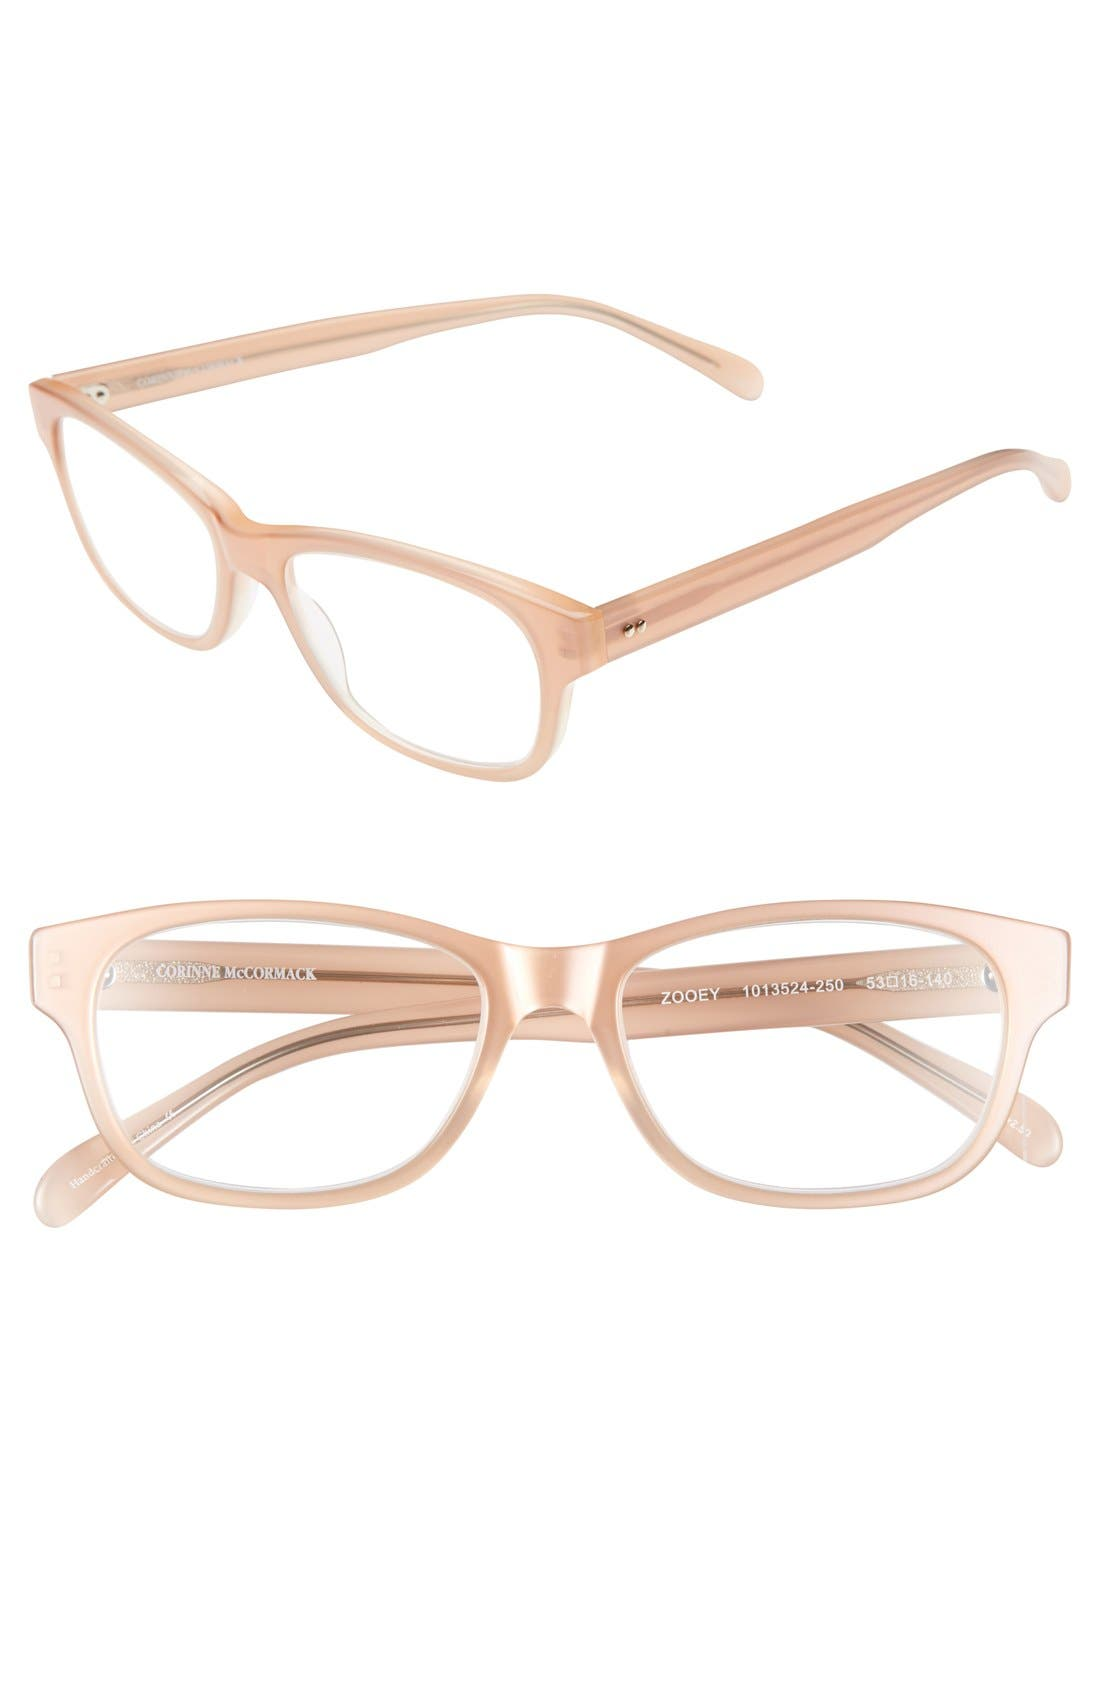 Main Image - Corinne McCormack 'Zooey' 53mm Reading Glasses (2 for $88)